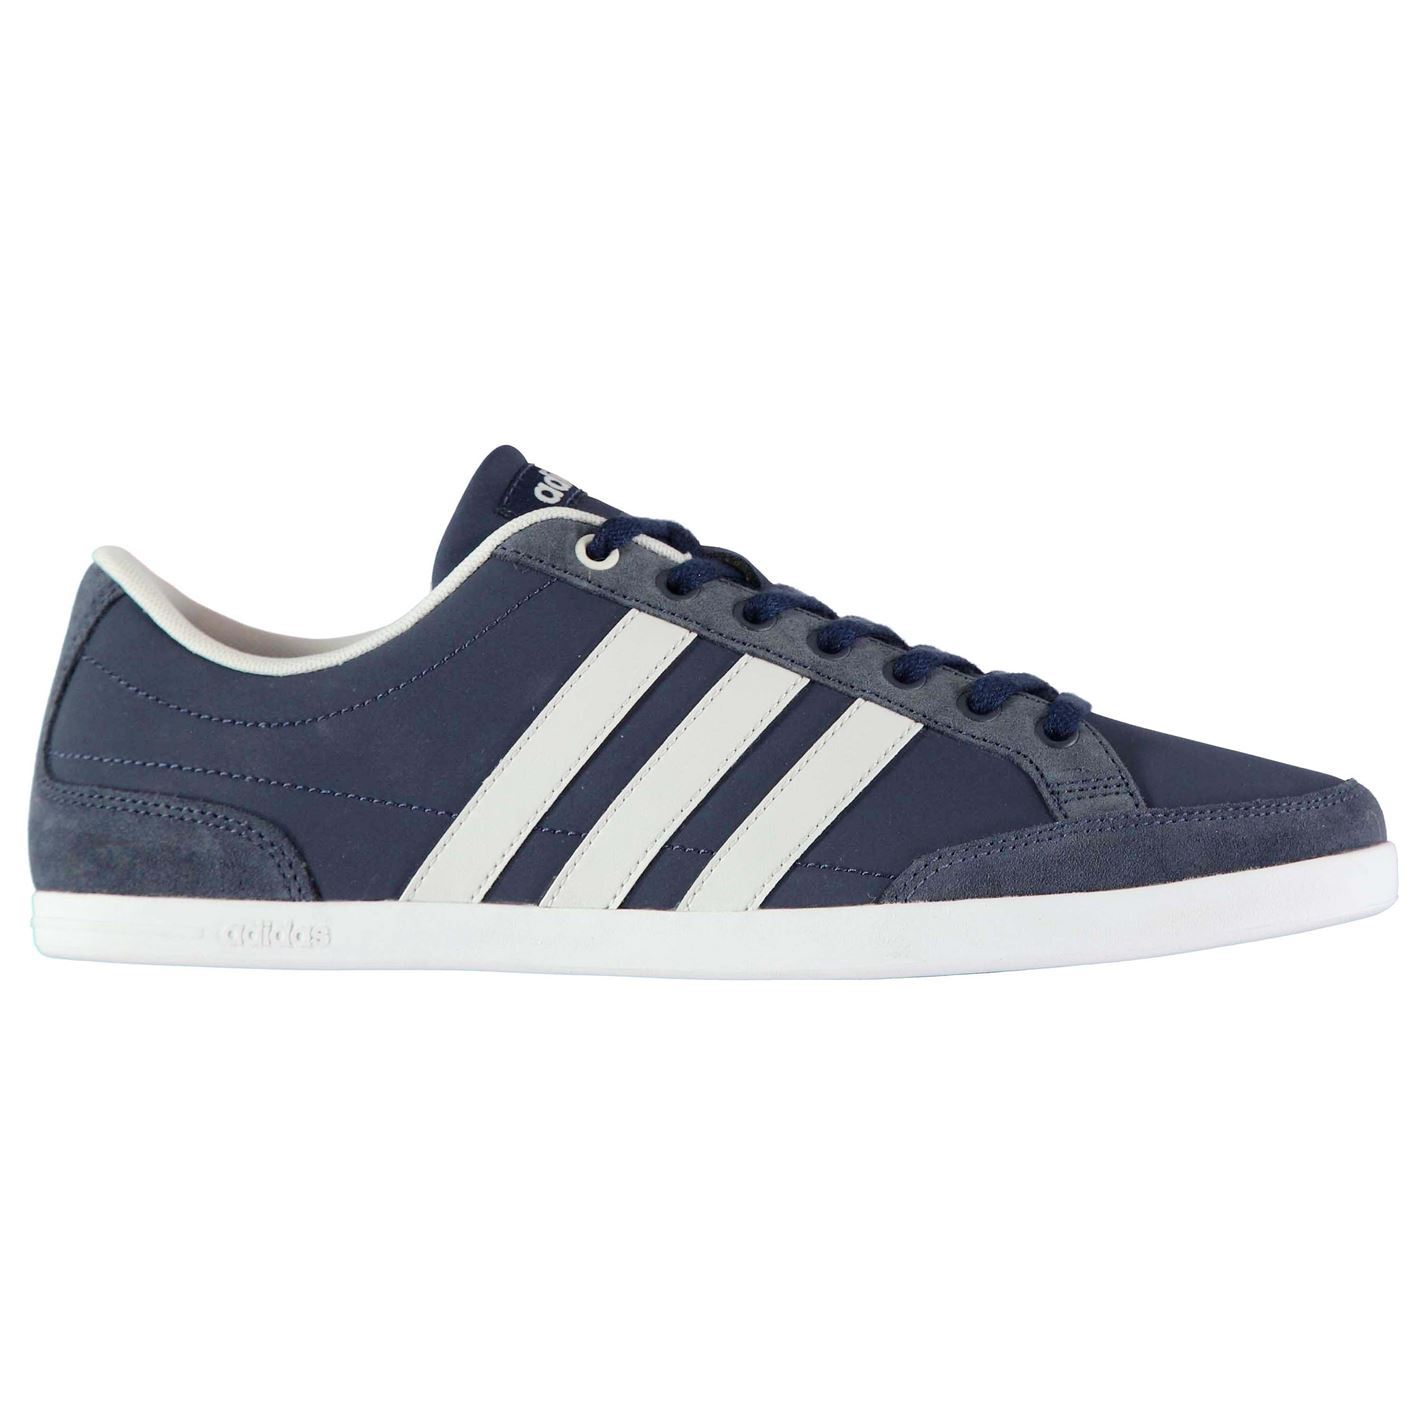 Adidas Caflaire Nubuck Sneakers  Laces Uomo Gents Suede Laces  Fastened Everyday ffc79d